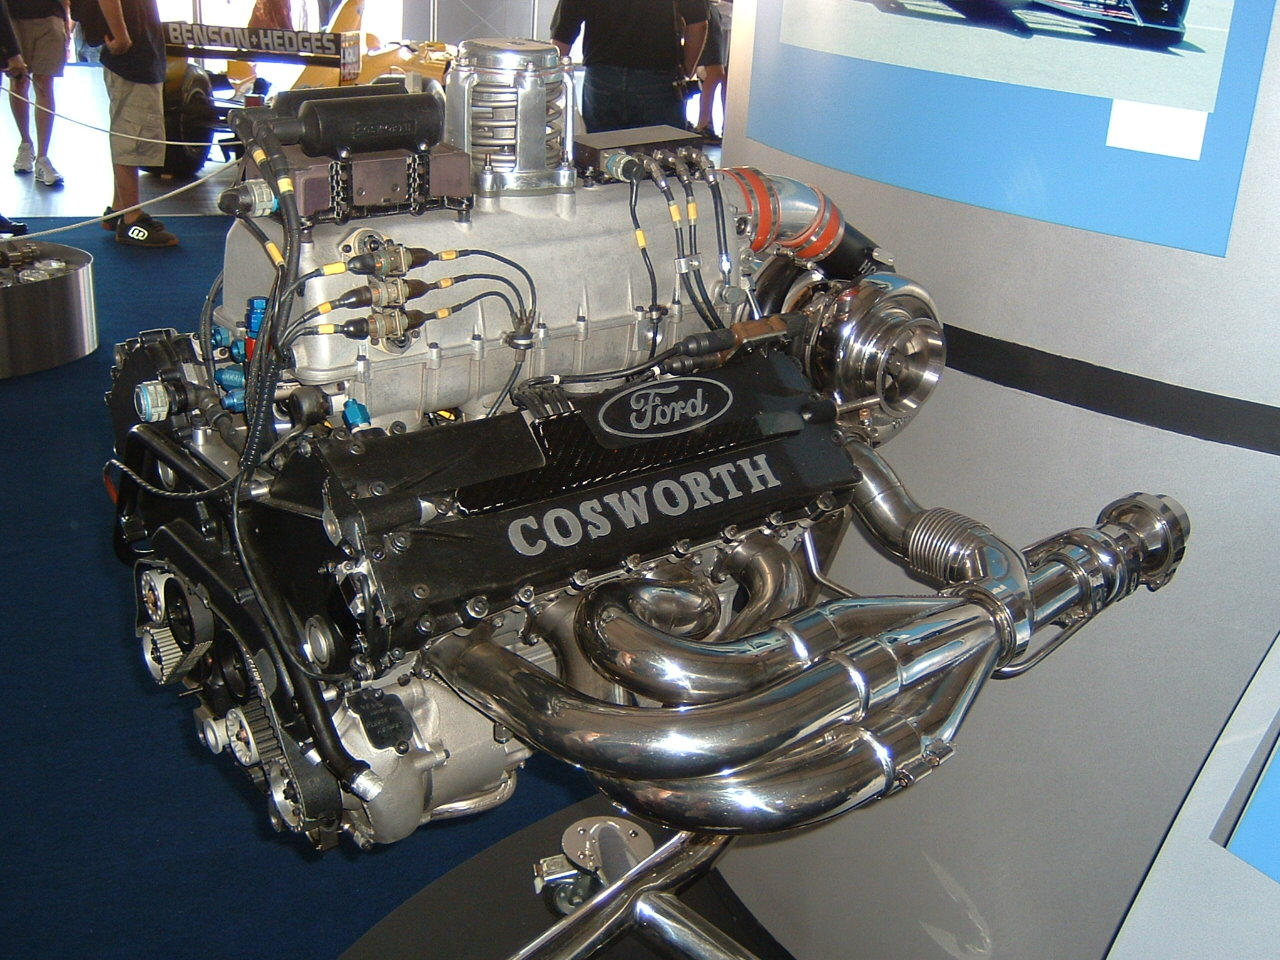 Cosworth Engine By Deathbybass On Deviantart